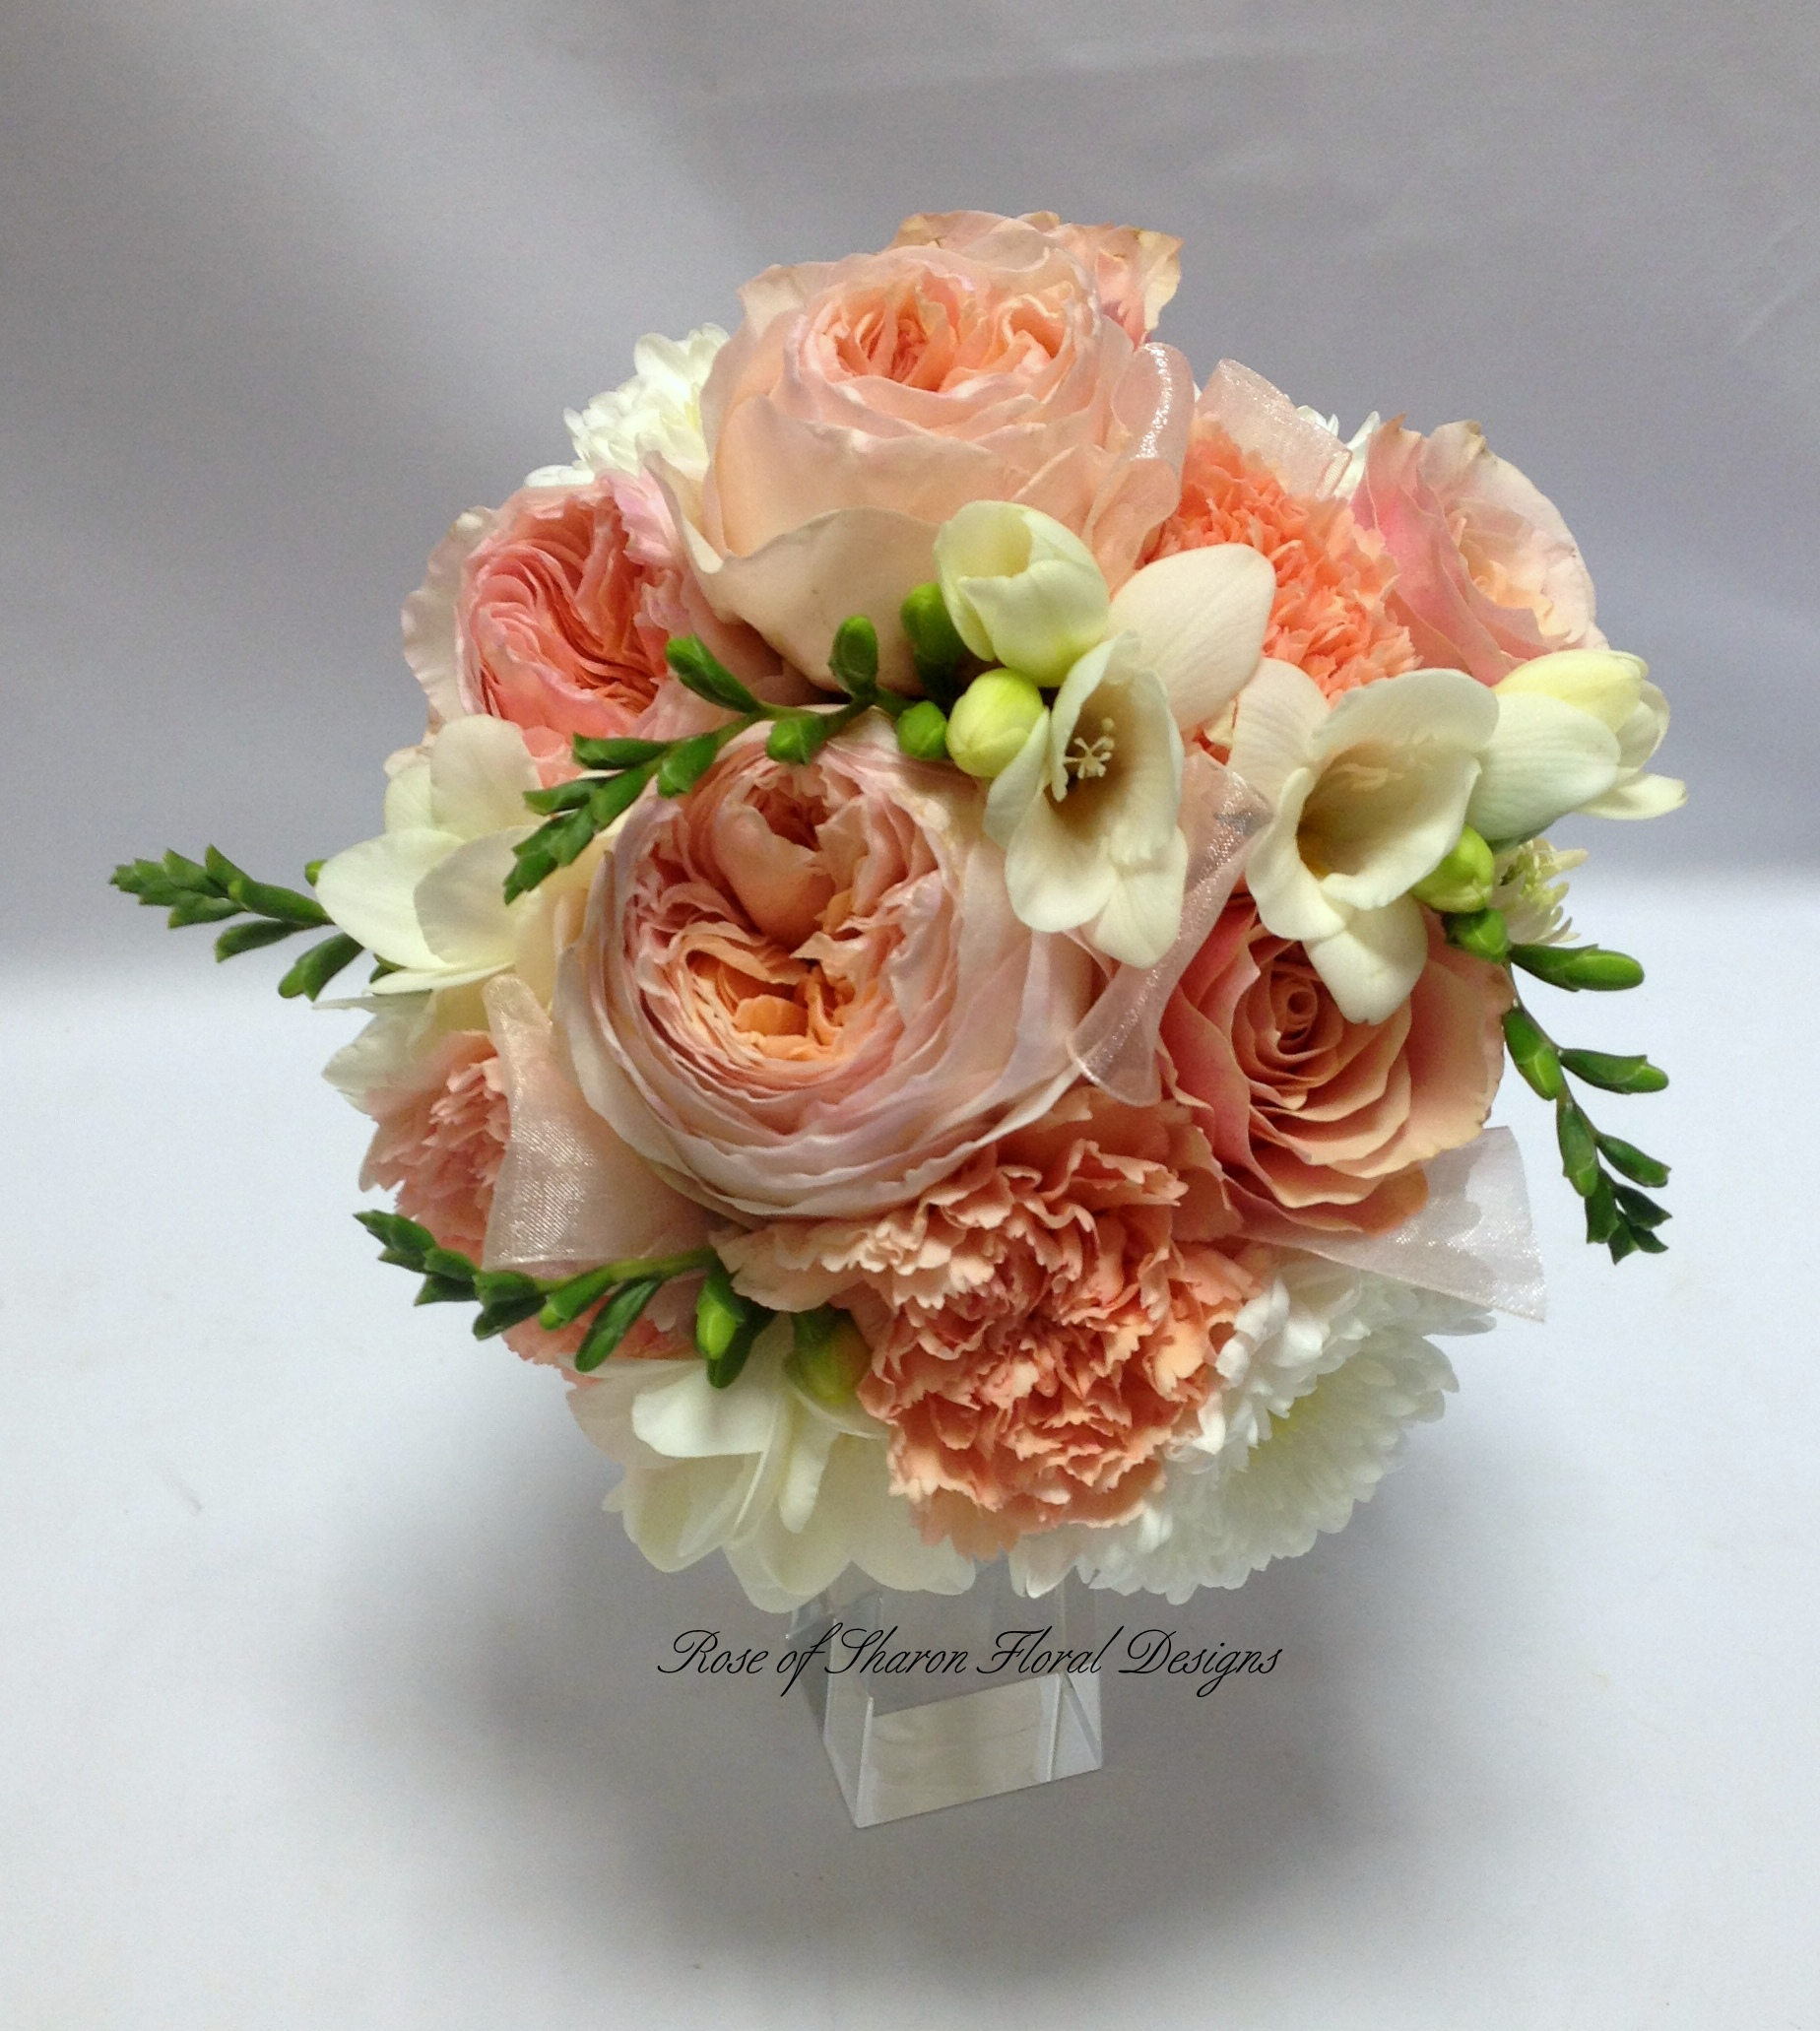 Hand Tied Bouquet featuring Mums, Freesia and Garden Roses, Rose of Sharon Floral Designs